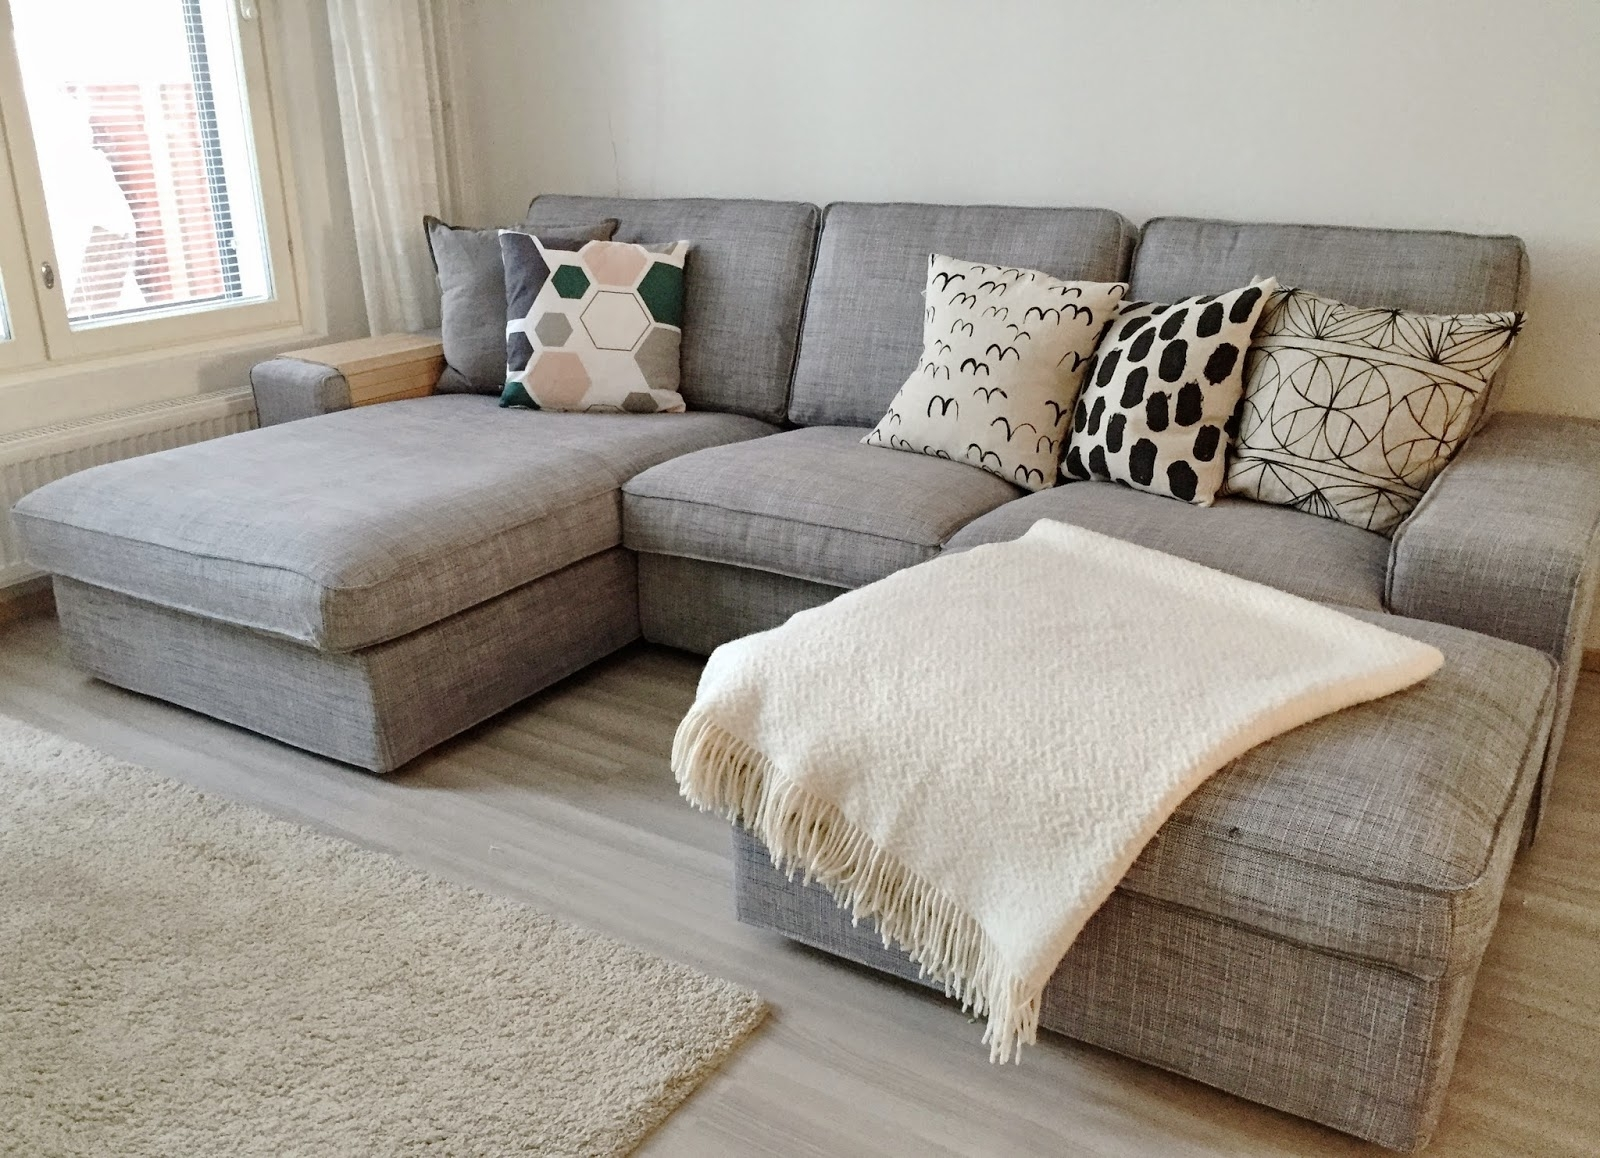 Apartment Sectional Sofas With Chaise Intended For Favorite New Unbelievable Apartment Sectional Sofa With Cha # (View 16 of 20)